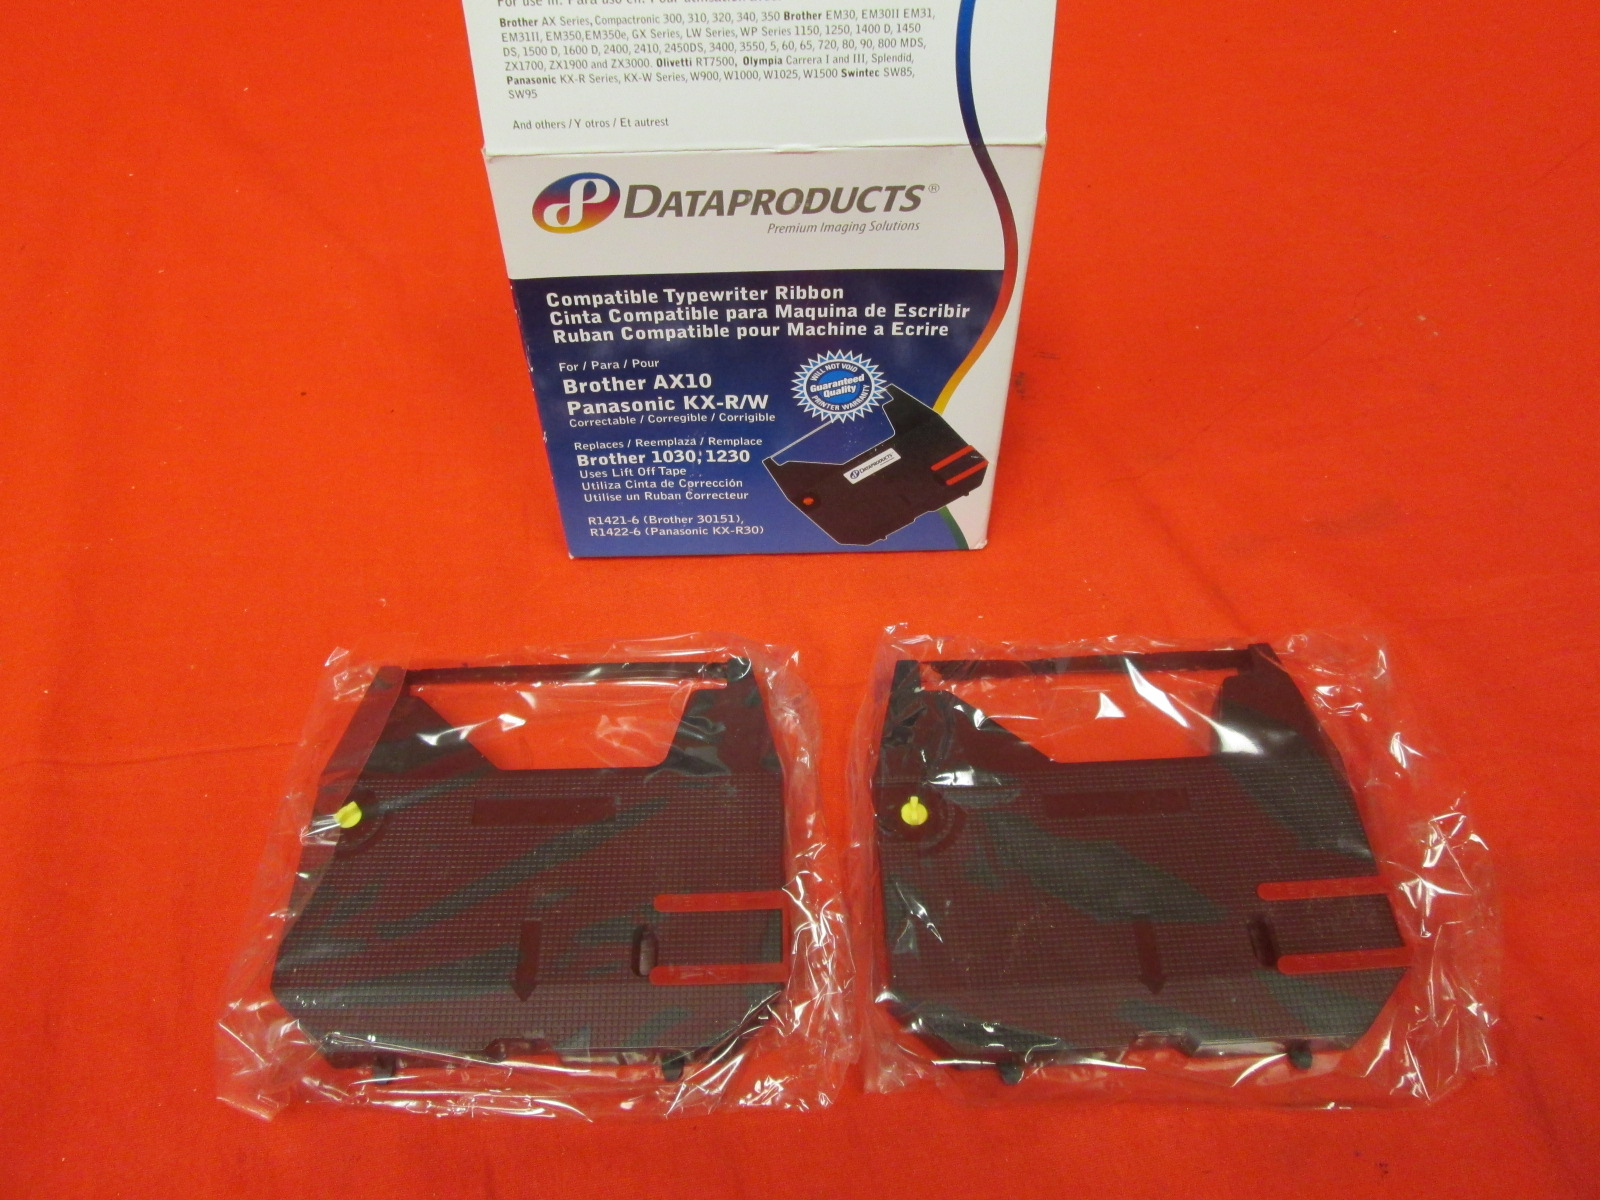 Dataproducts R1420 Typewriter Ribbon Black 2 Pack